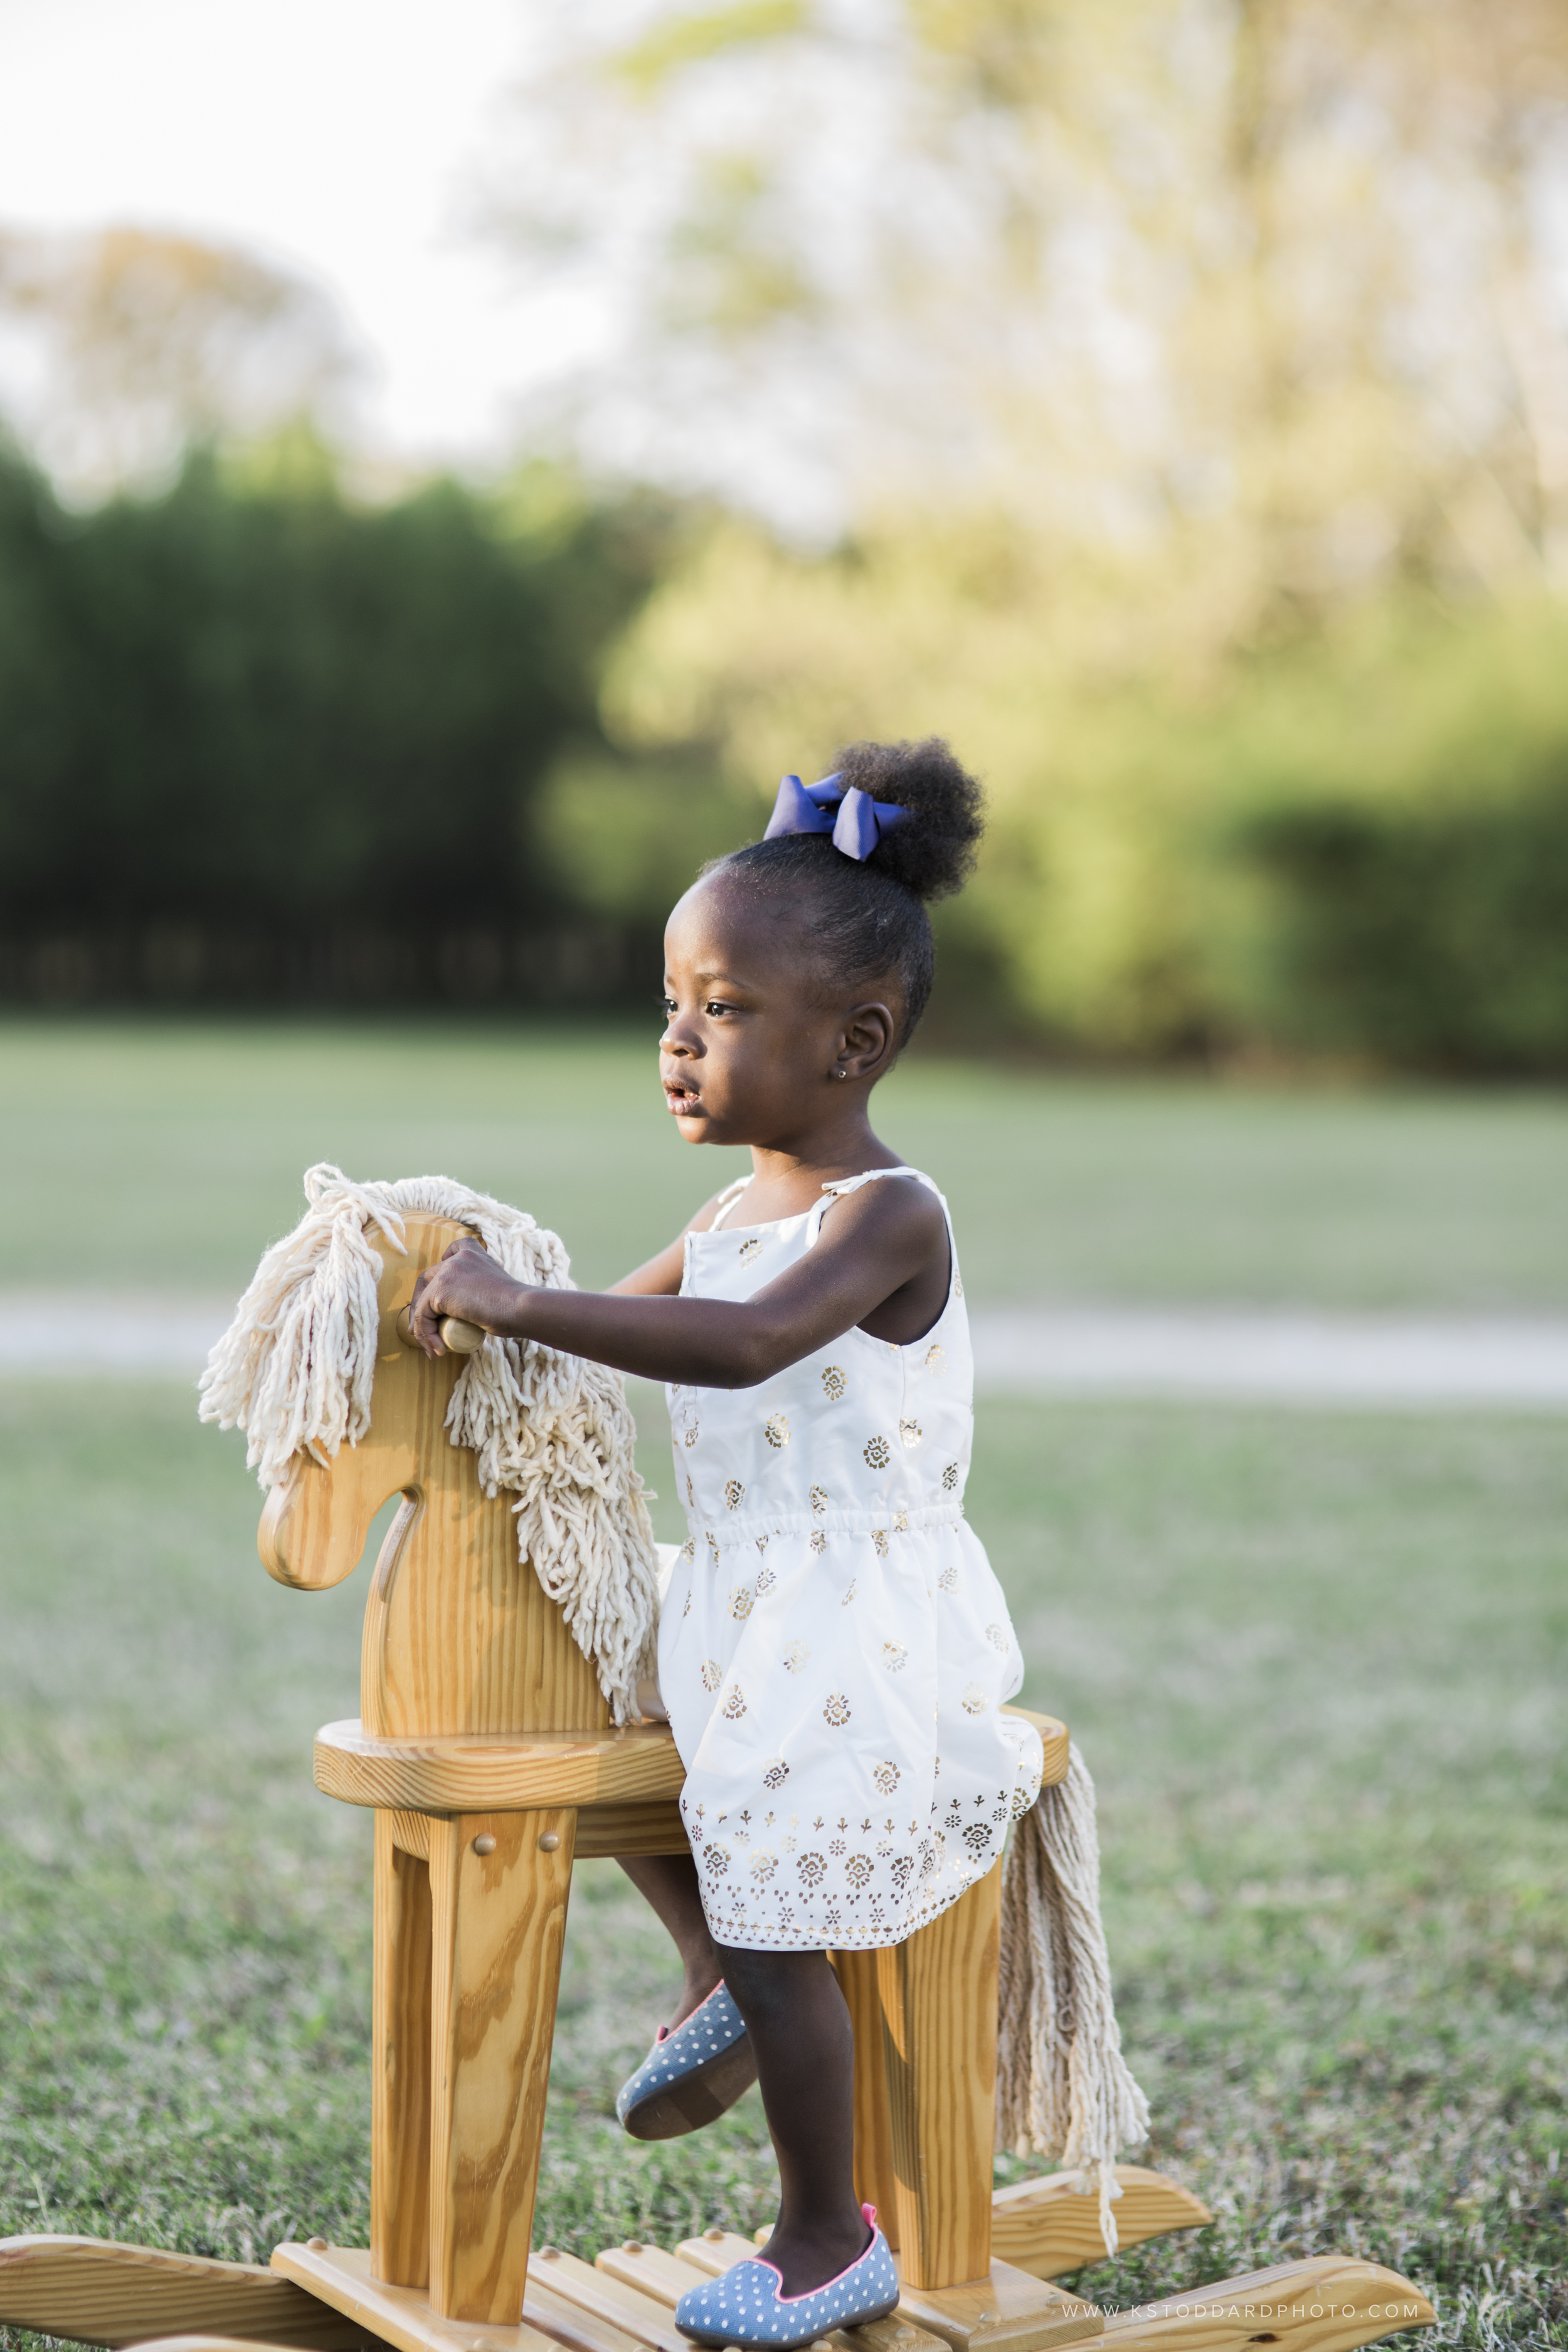 K'meil and Family - St. Jude Children's Research Hospital - Memphis - K. Stoddard Photography 015.jpg